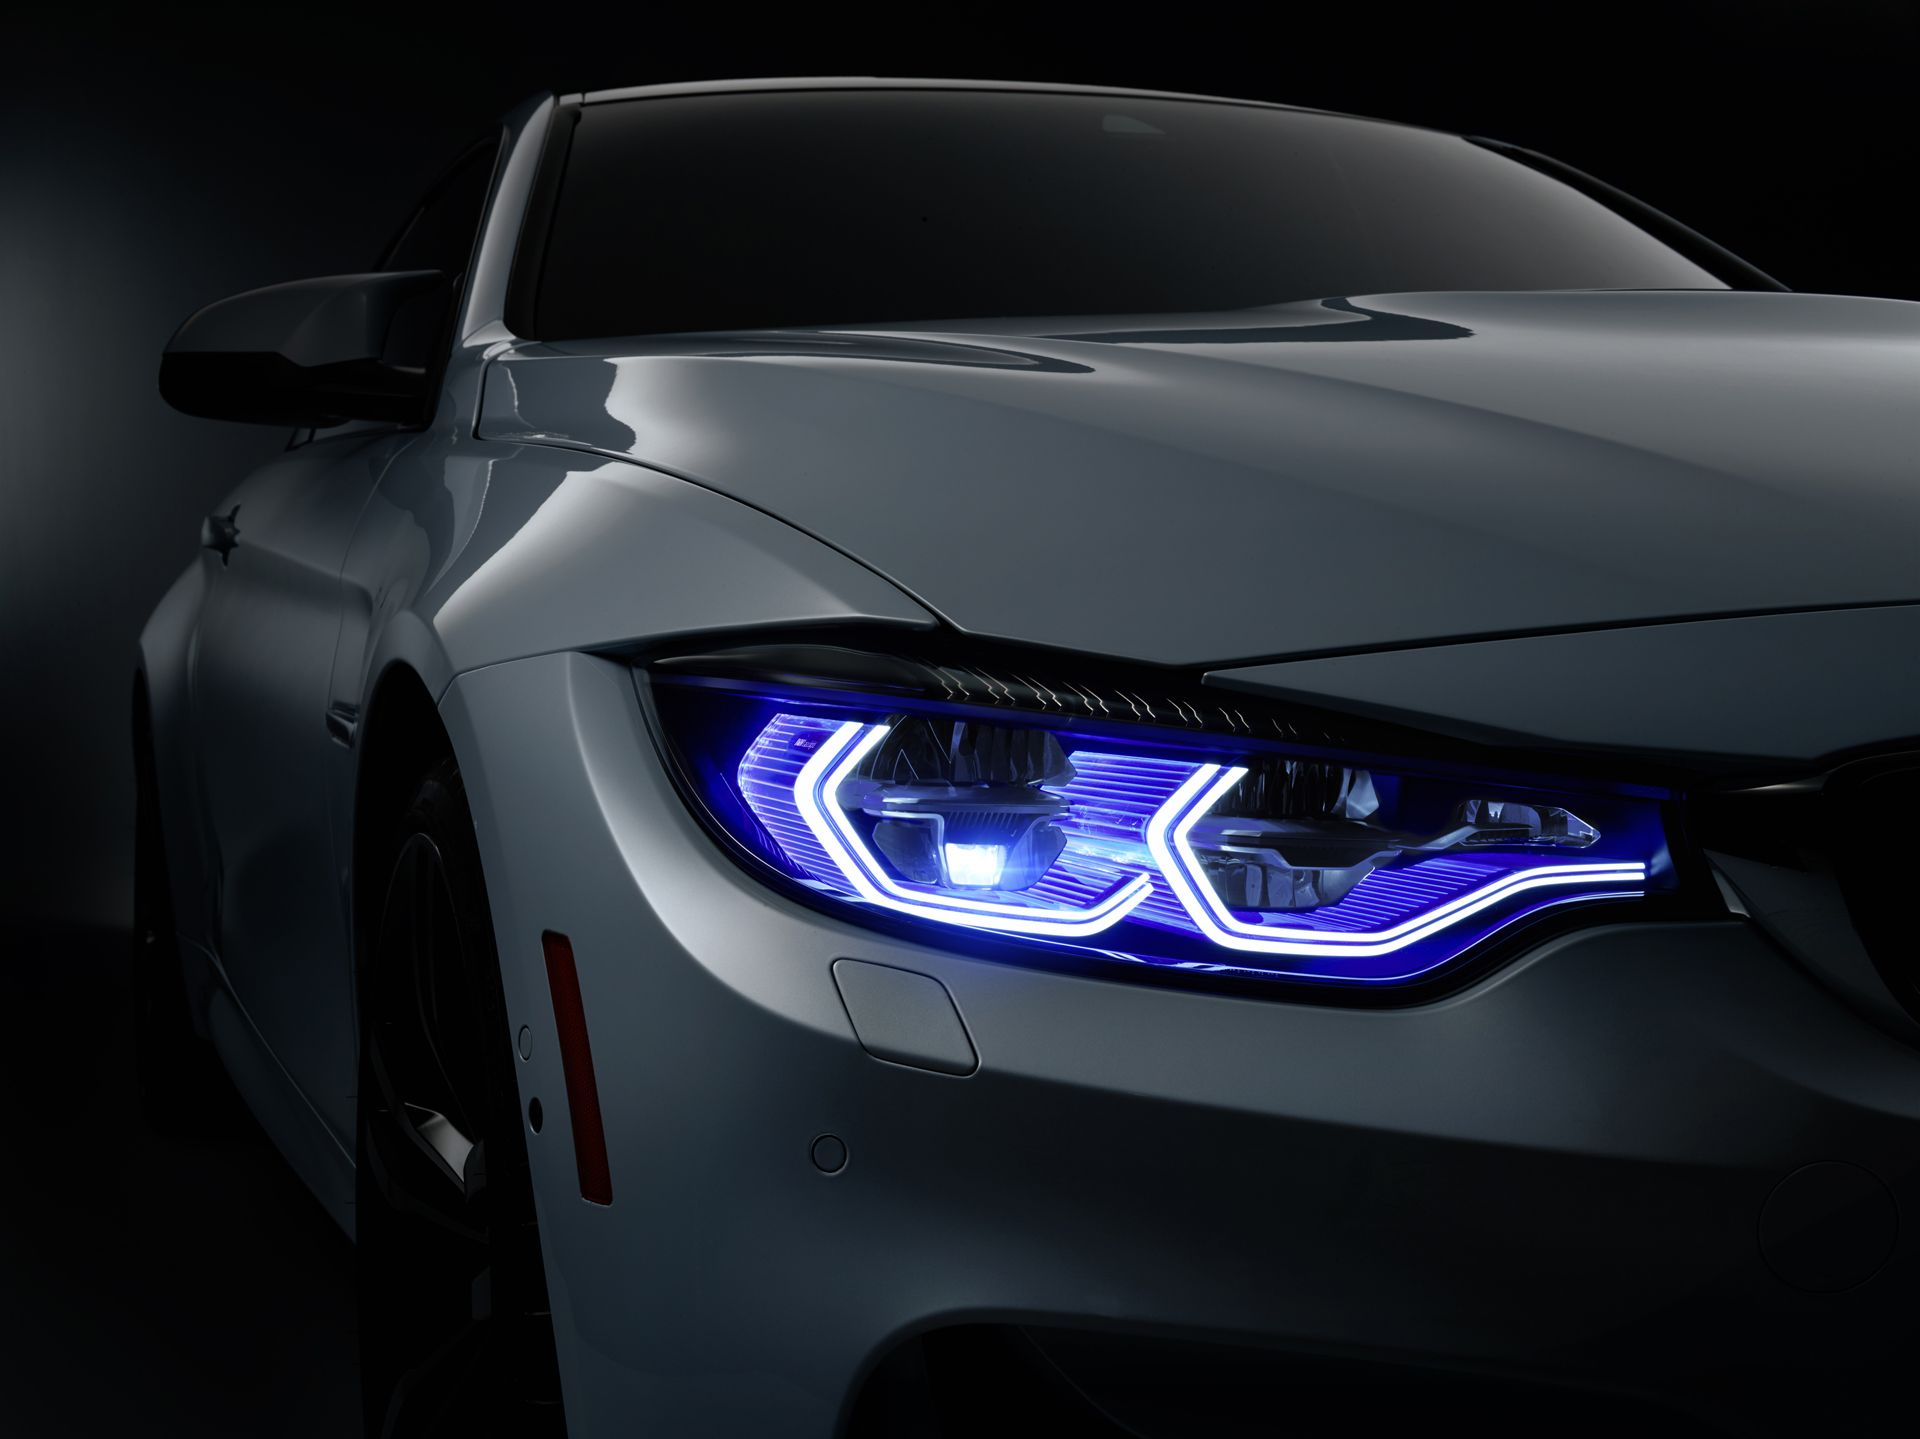 BMW M4 Concept Iconic Lights. Introducing BMW's LaserLight 2.0 and OLED